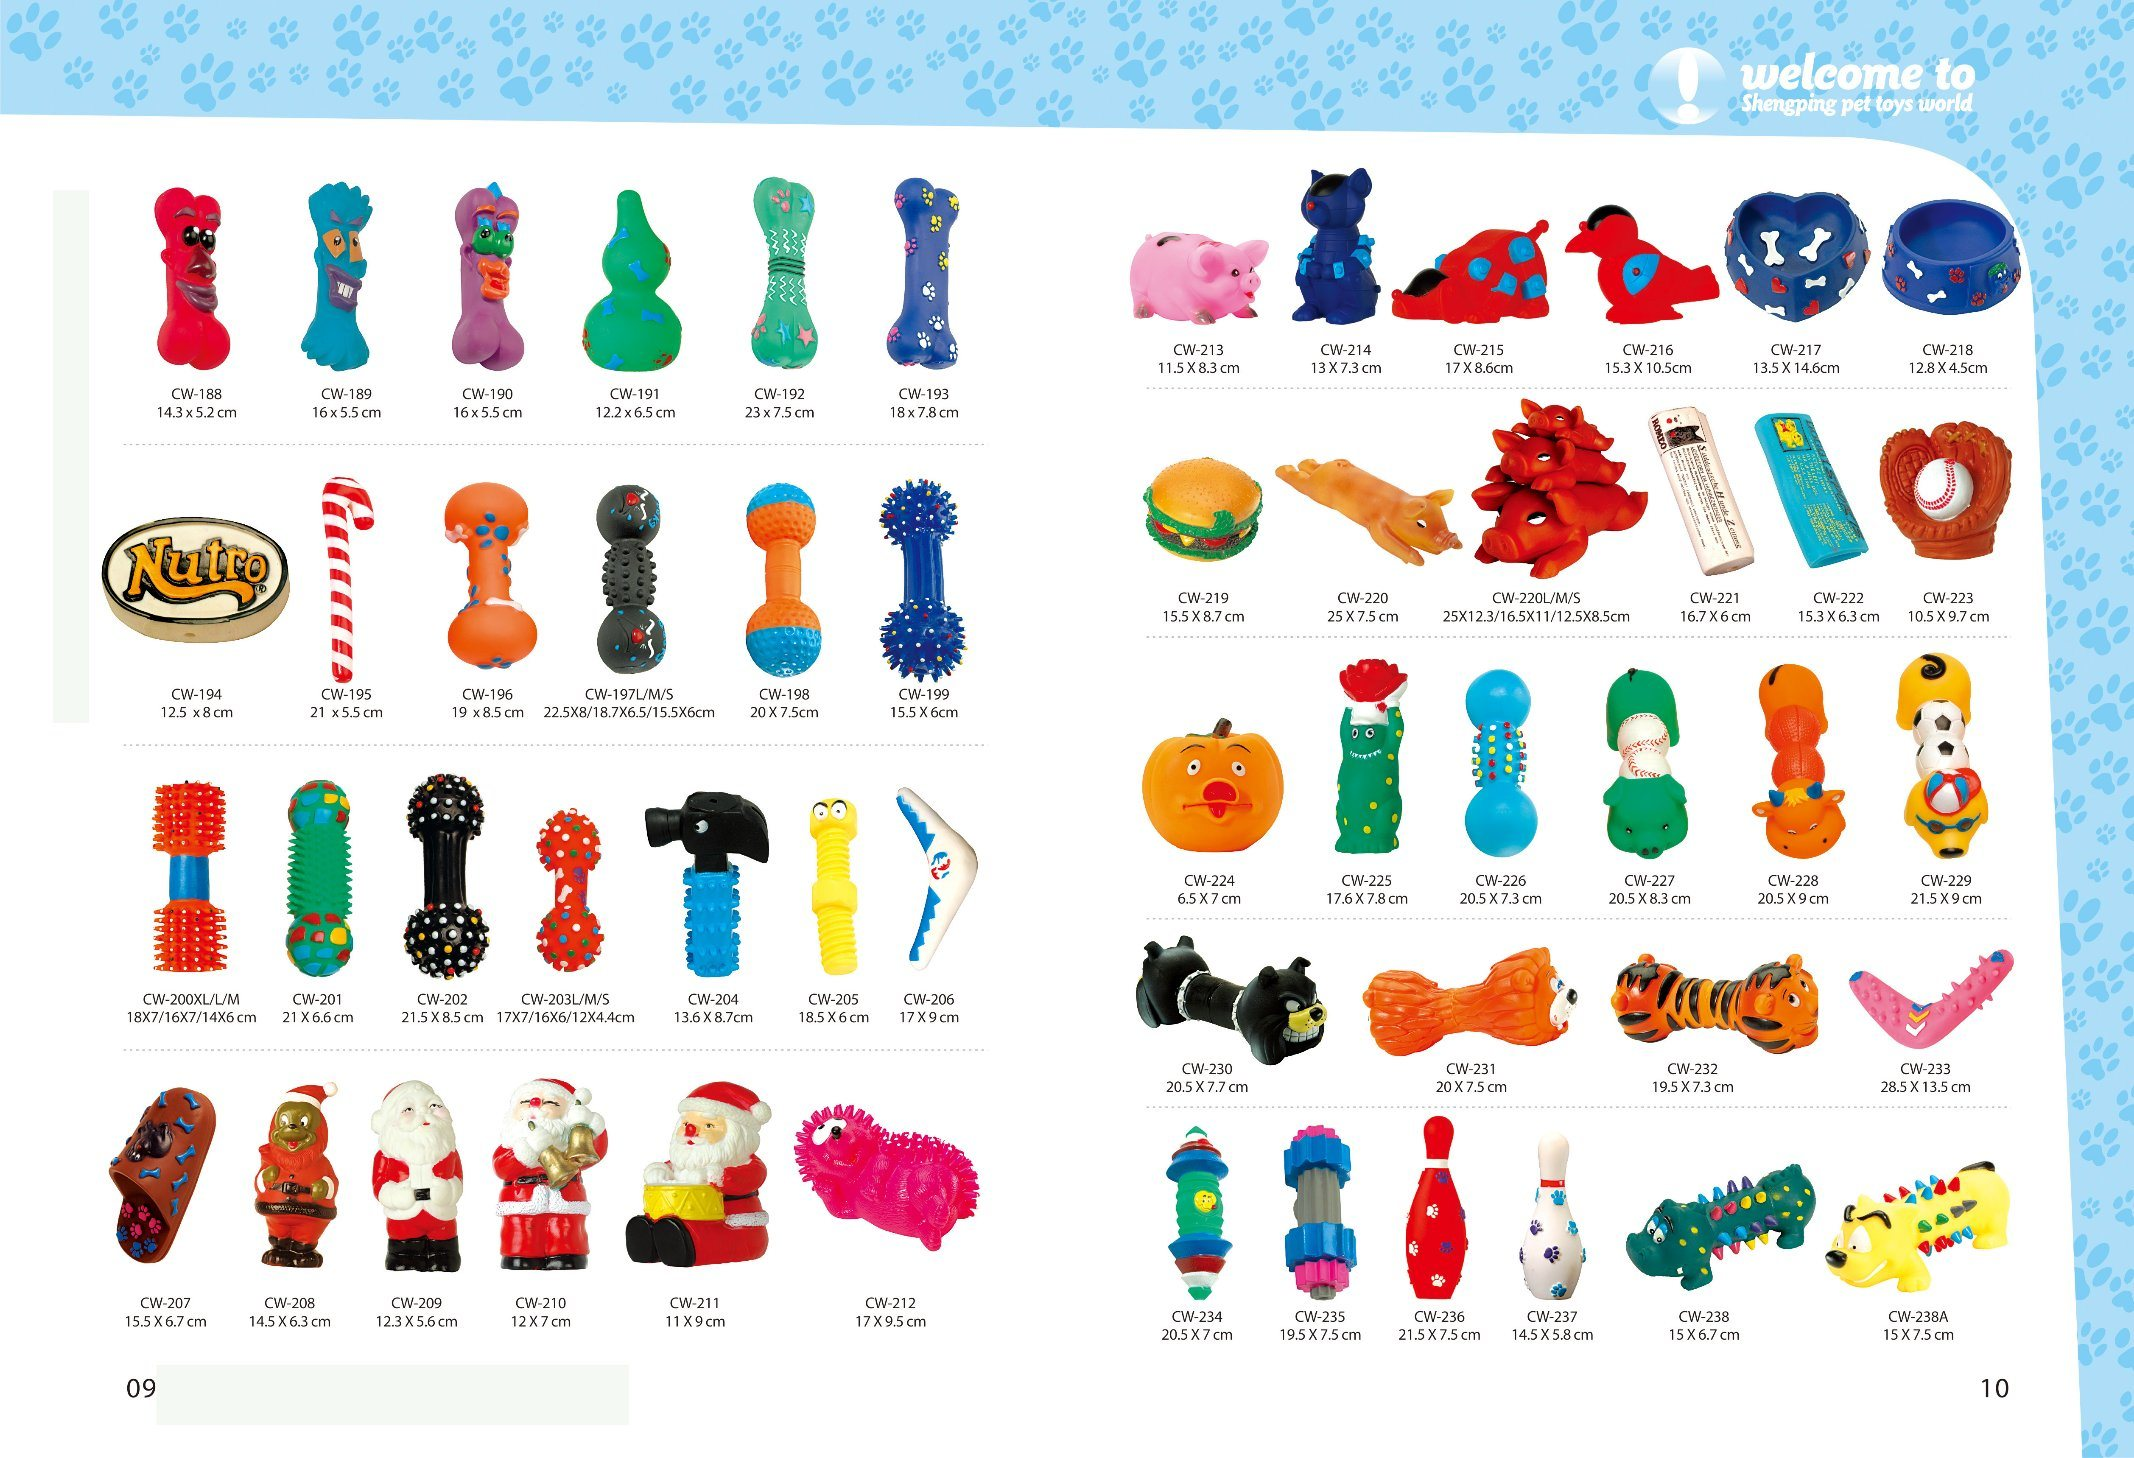 Dog Toy Vinyl Toy Cw-417 Pet Products